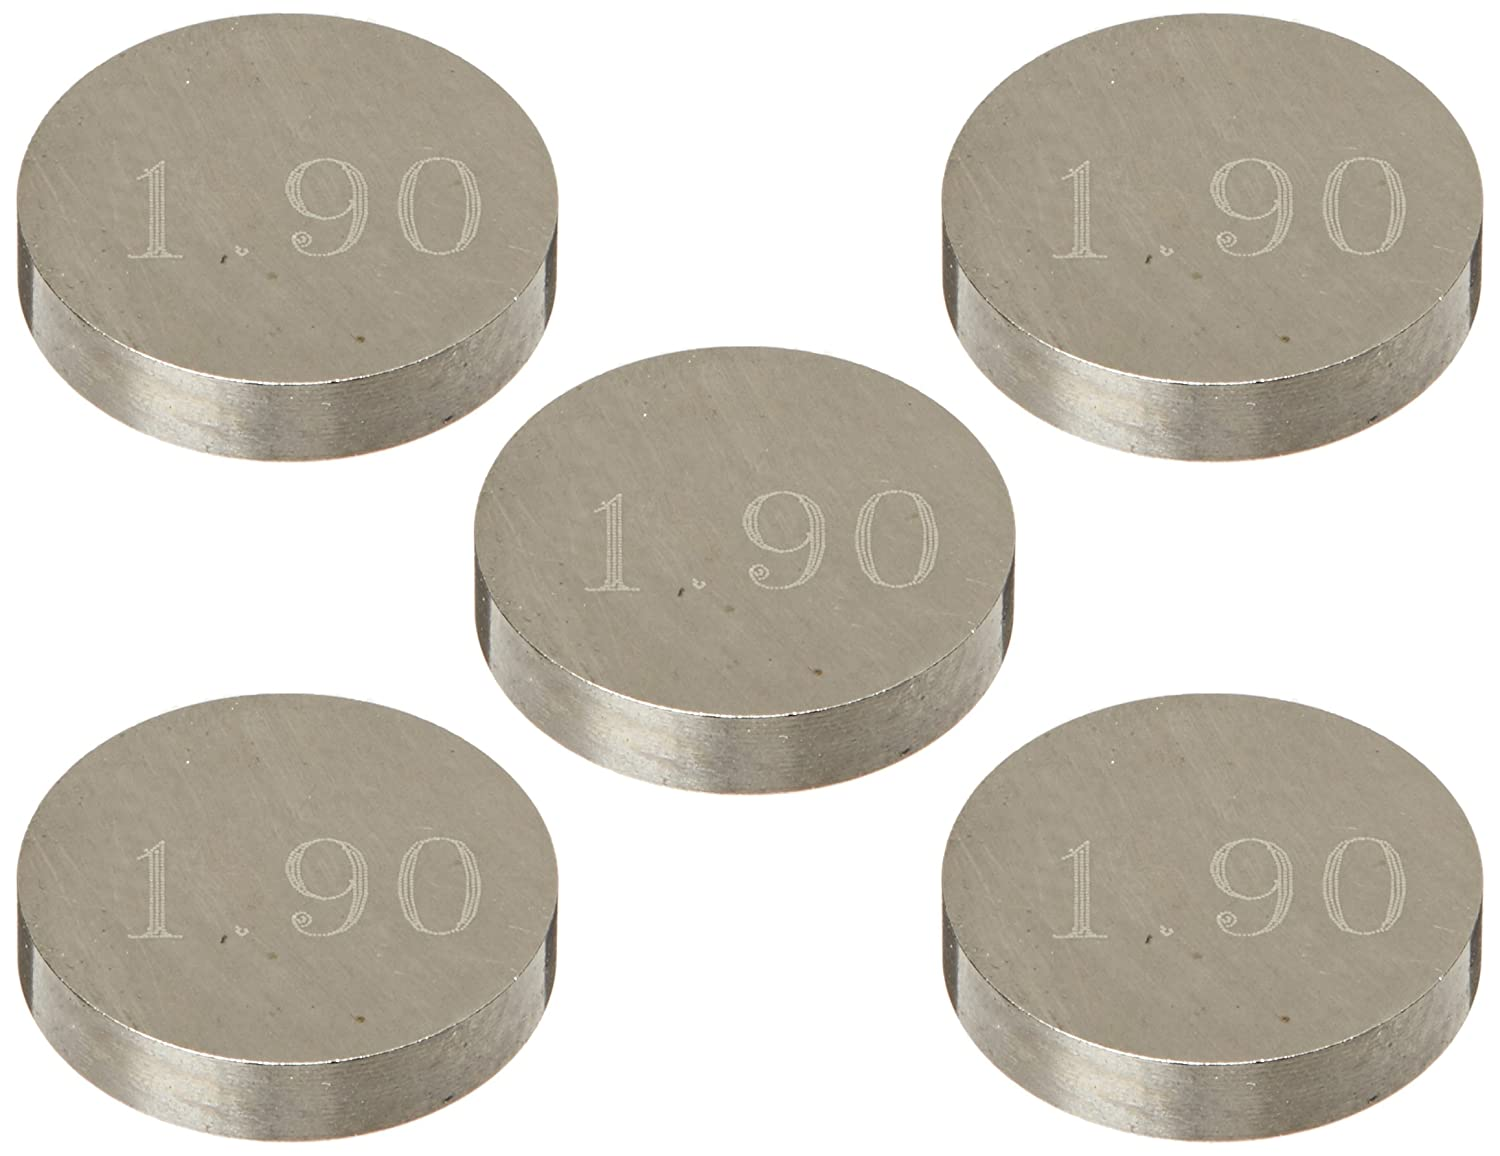 Prox Racing Parts 29.948190 9.48mm x 1.90mm Valve Shim, Pack of 5